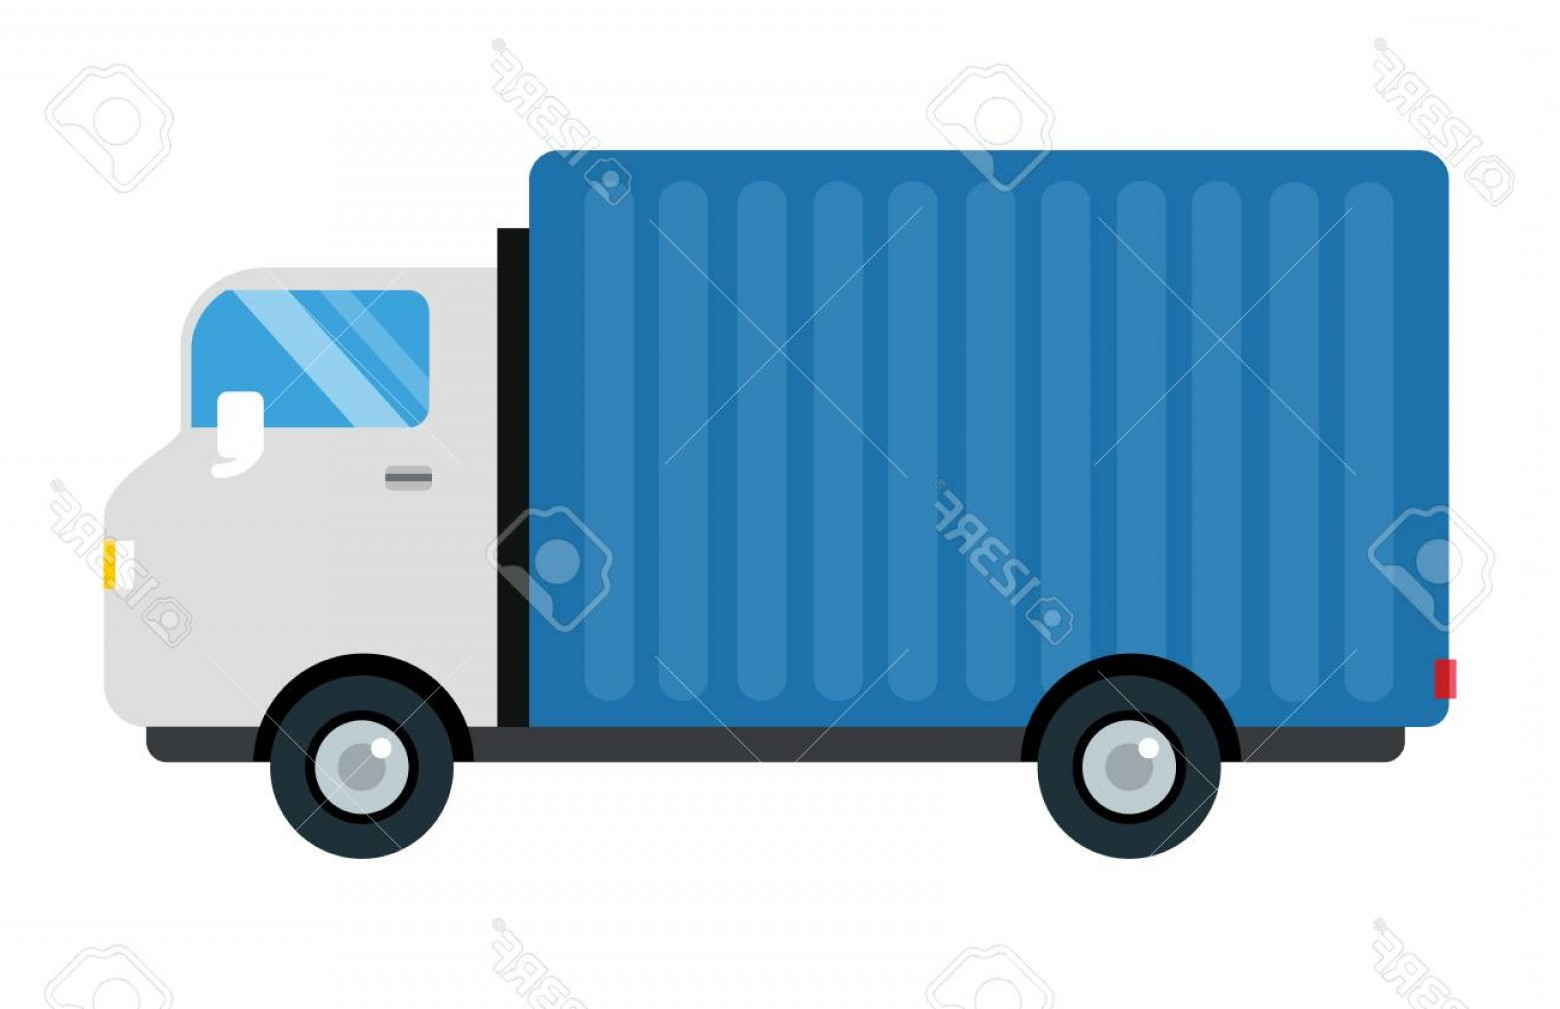 Packages On A Truck Vector: Photostock Vector Delivery Transport Cargo Truck Vector Illustration Trucking Car Trailer Transportation Delivery Busi